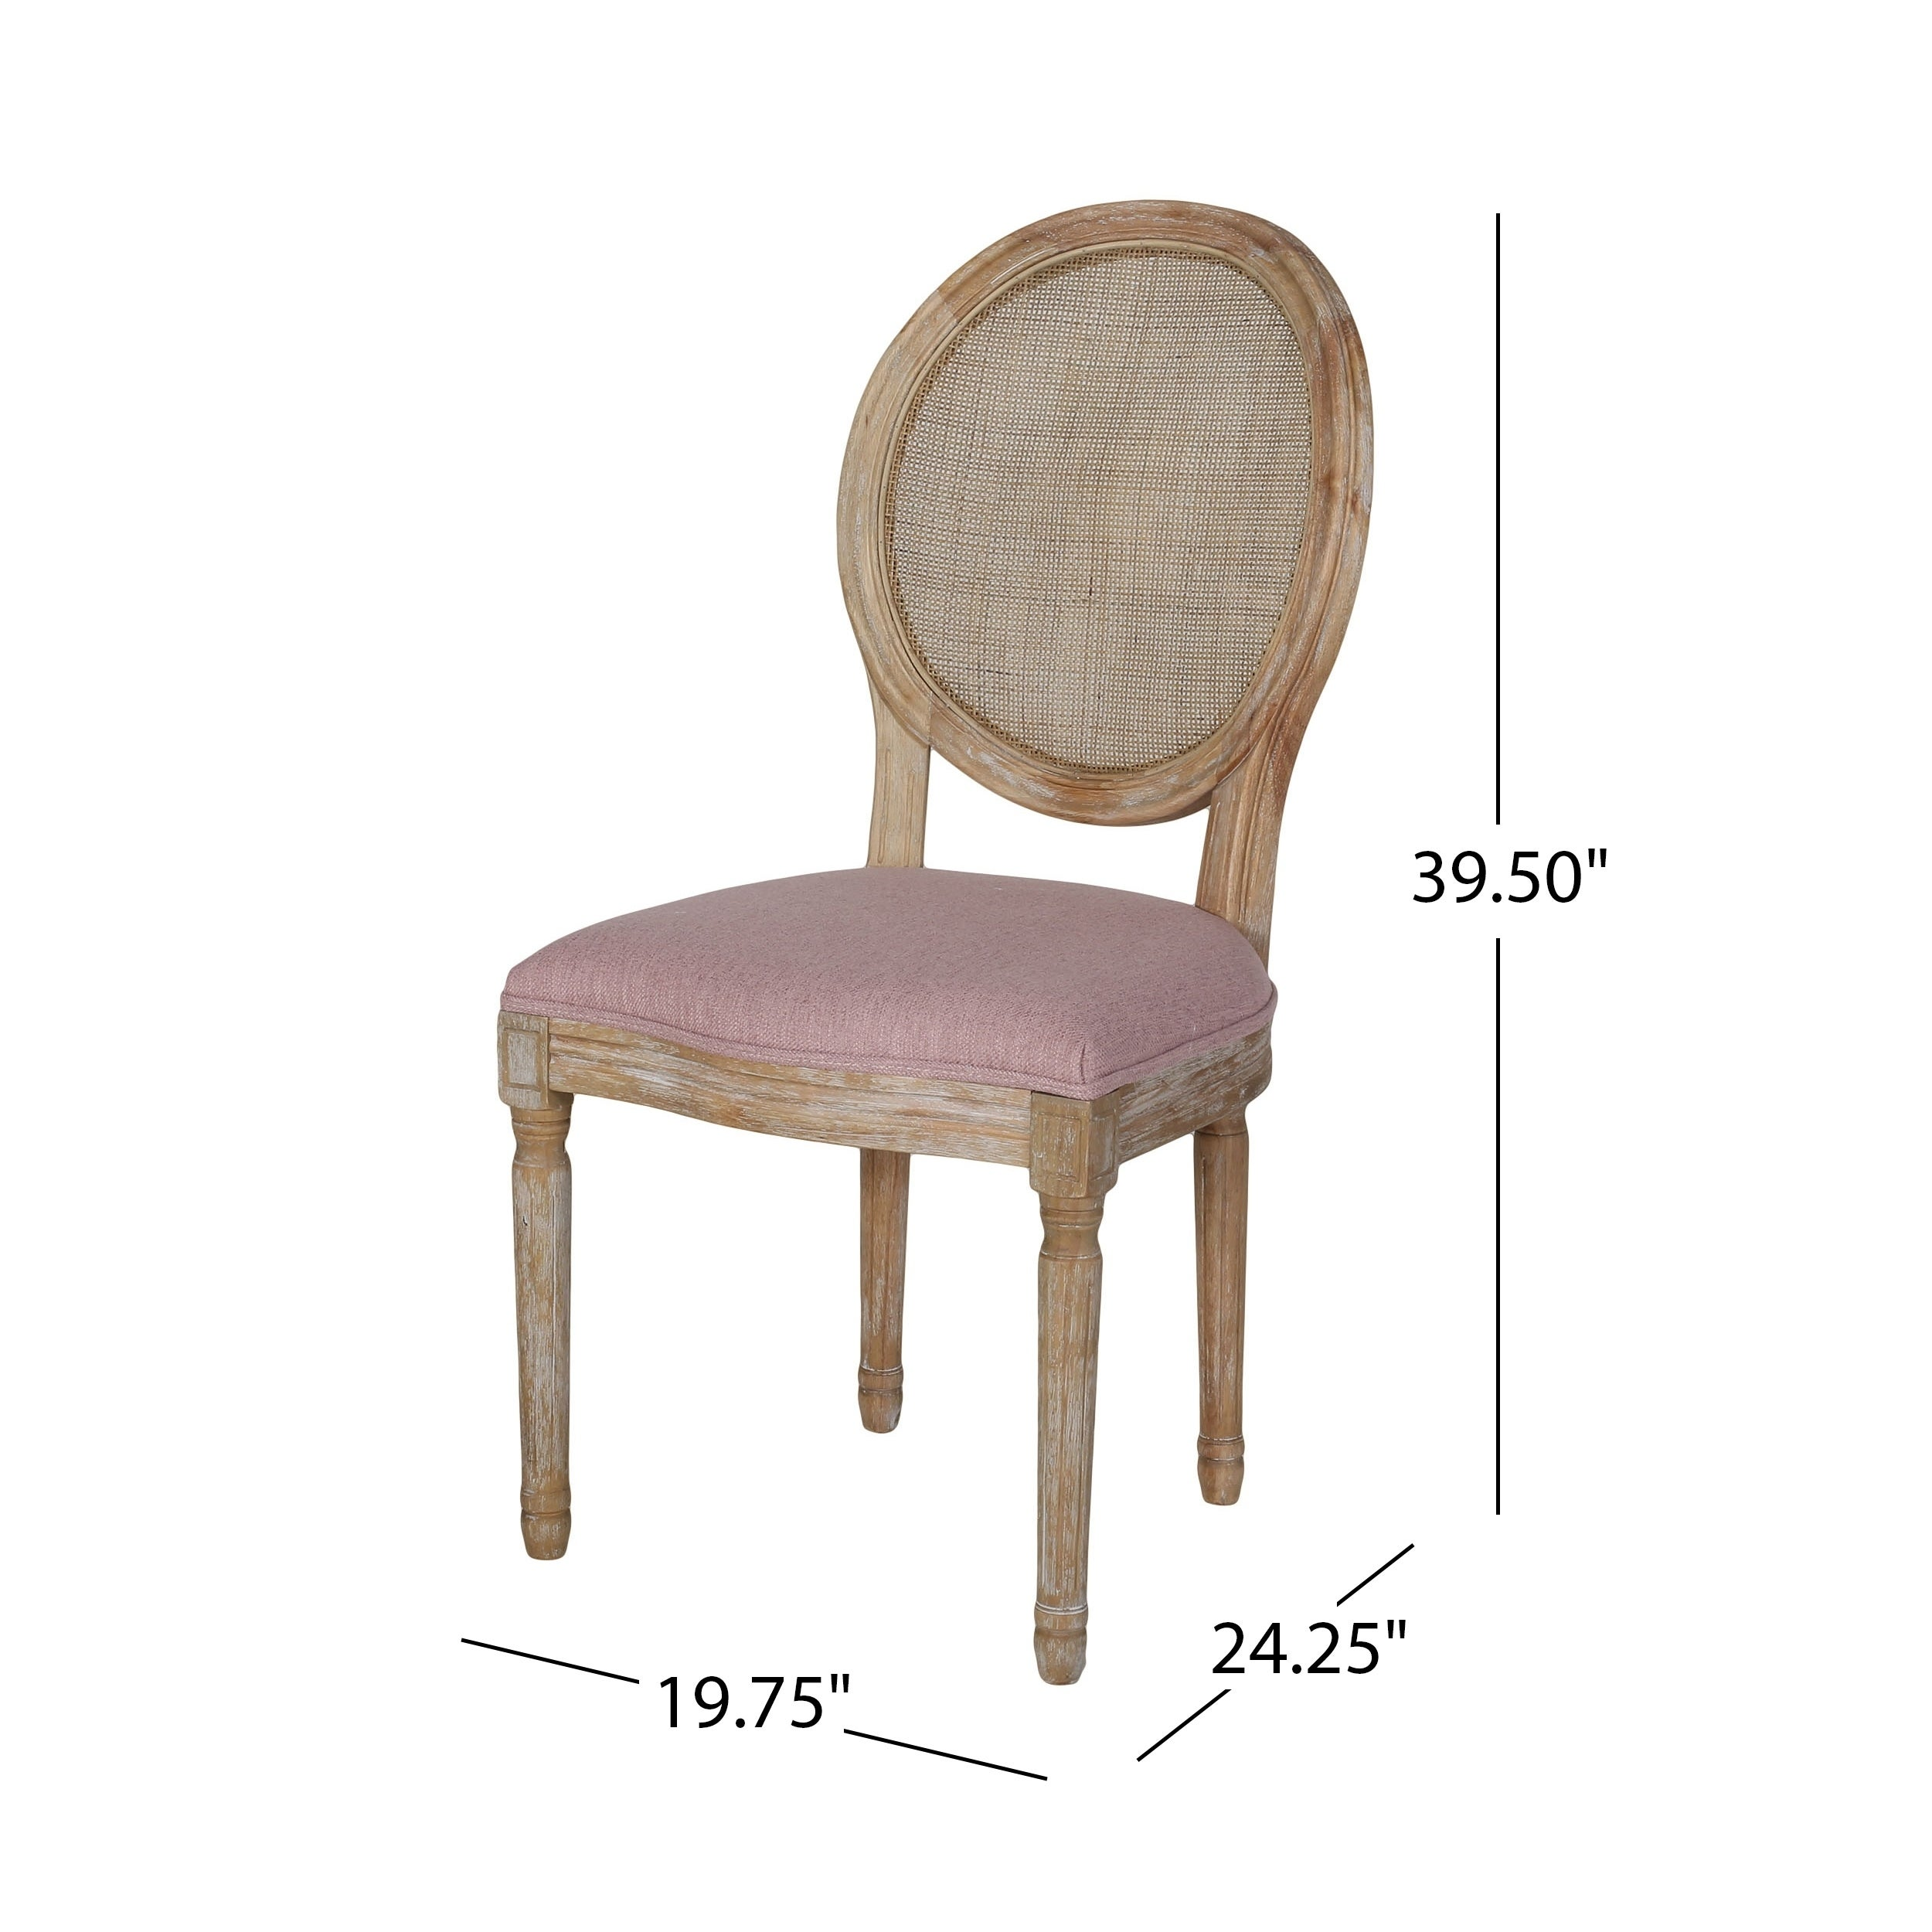 Christopher Knight Home Epworth Wooden Dining Chair With Wicker Back And Fabric Seating Set Of 2 On Free Shipping Today